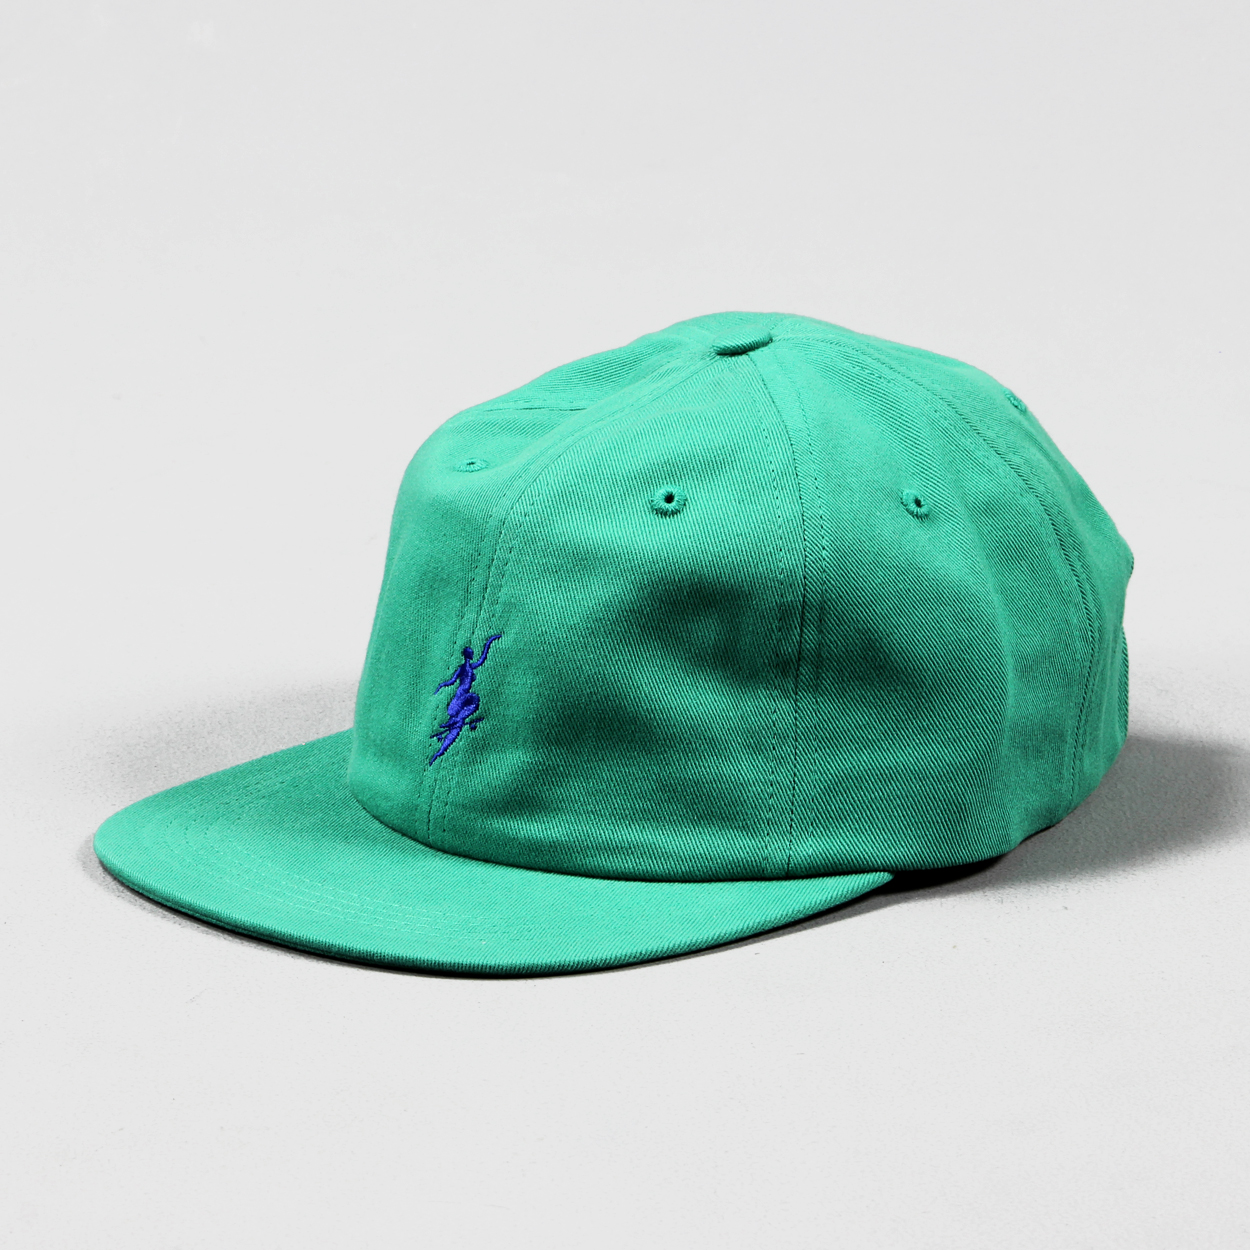 a15790f4 Polar Skate Co. No Comply Adjustable Buckle Cap Hat Green Blue £26.25